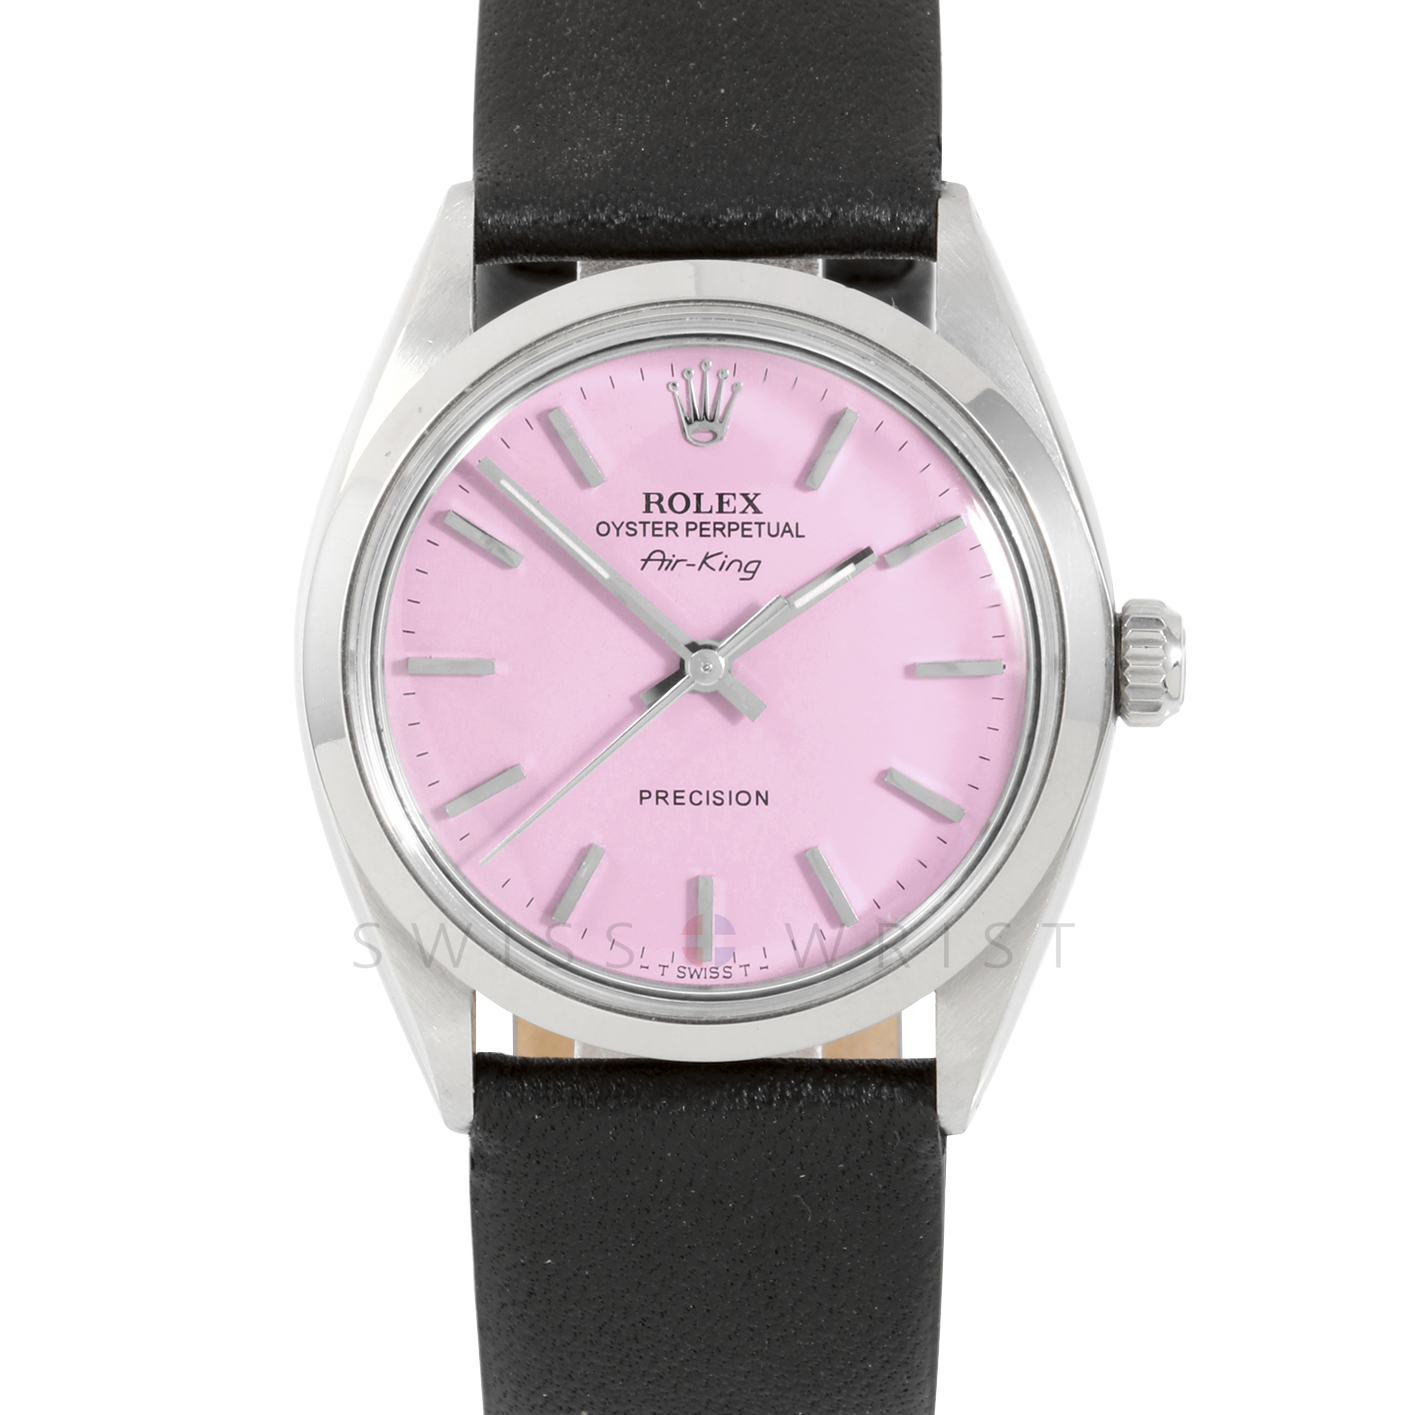 Rolex Airking - Pink Stick Dial - Stainless Steel - Smooth Bezel On A Black Leather Strap - Pre-Owned